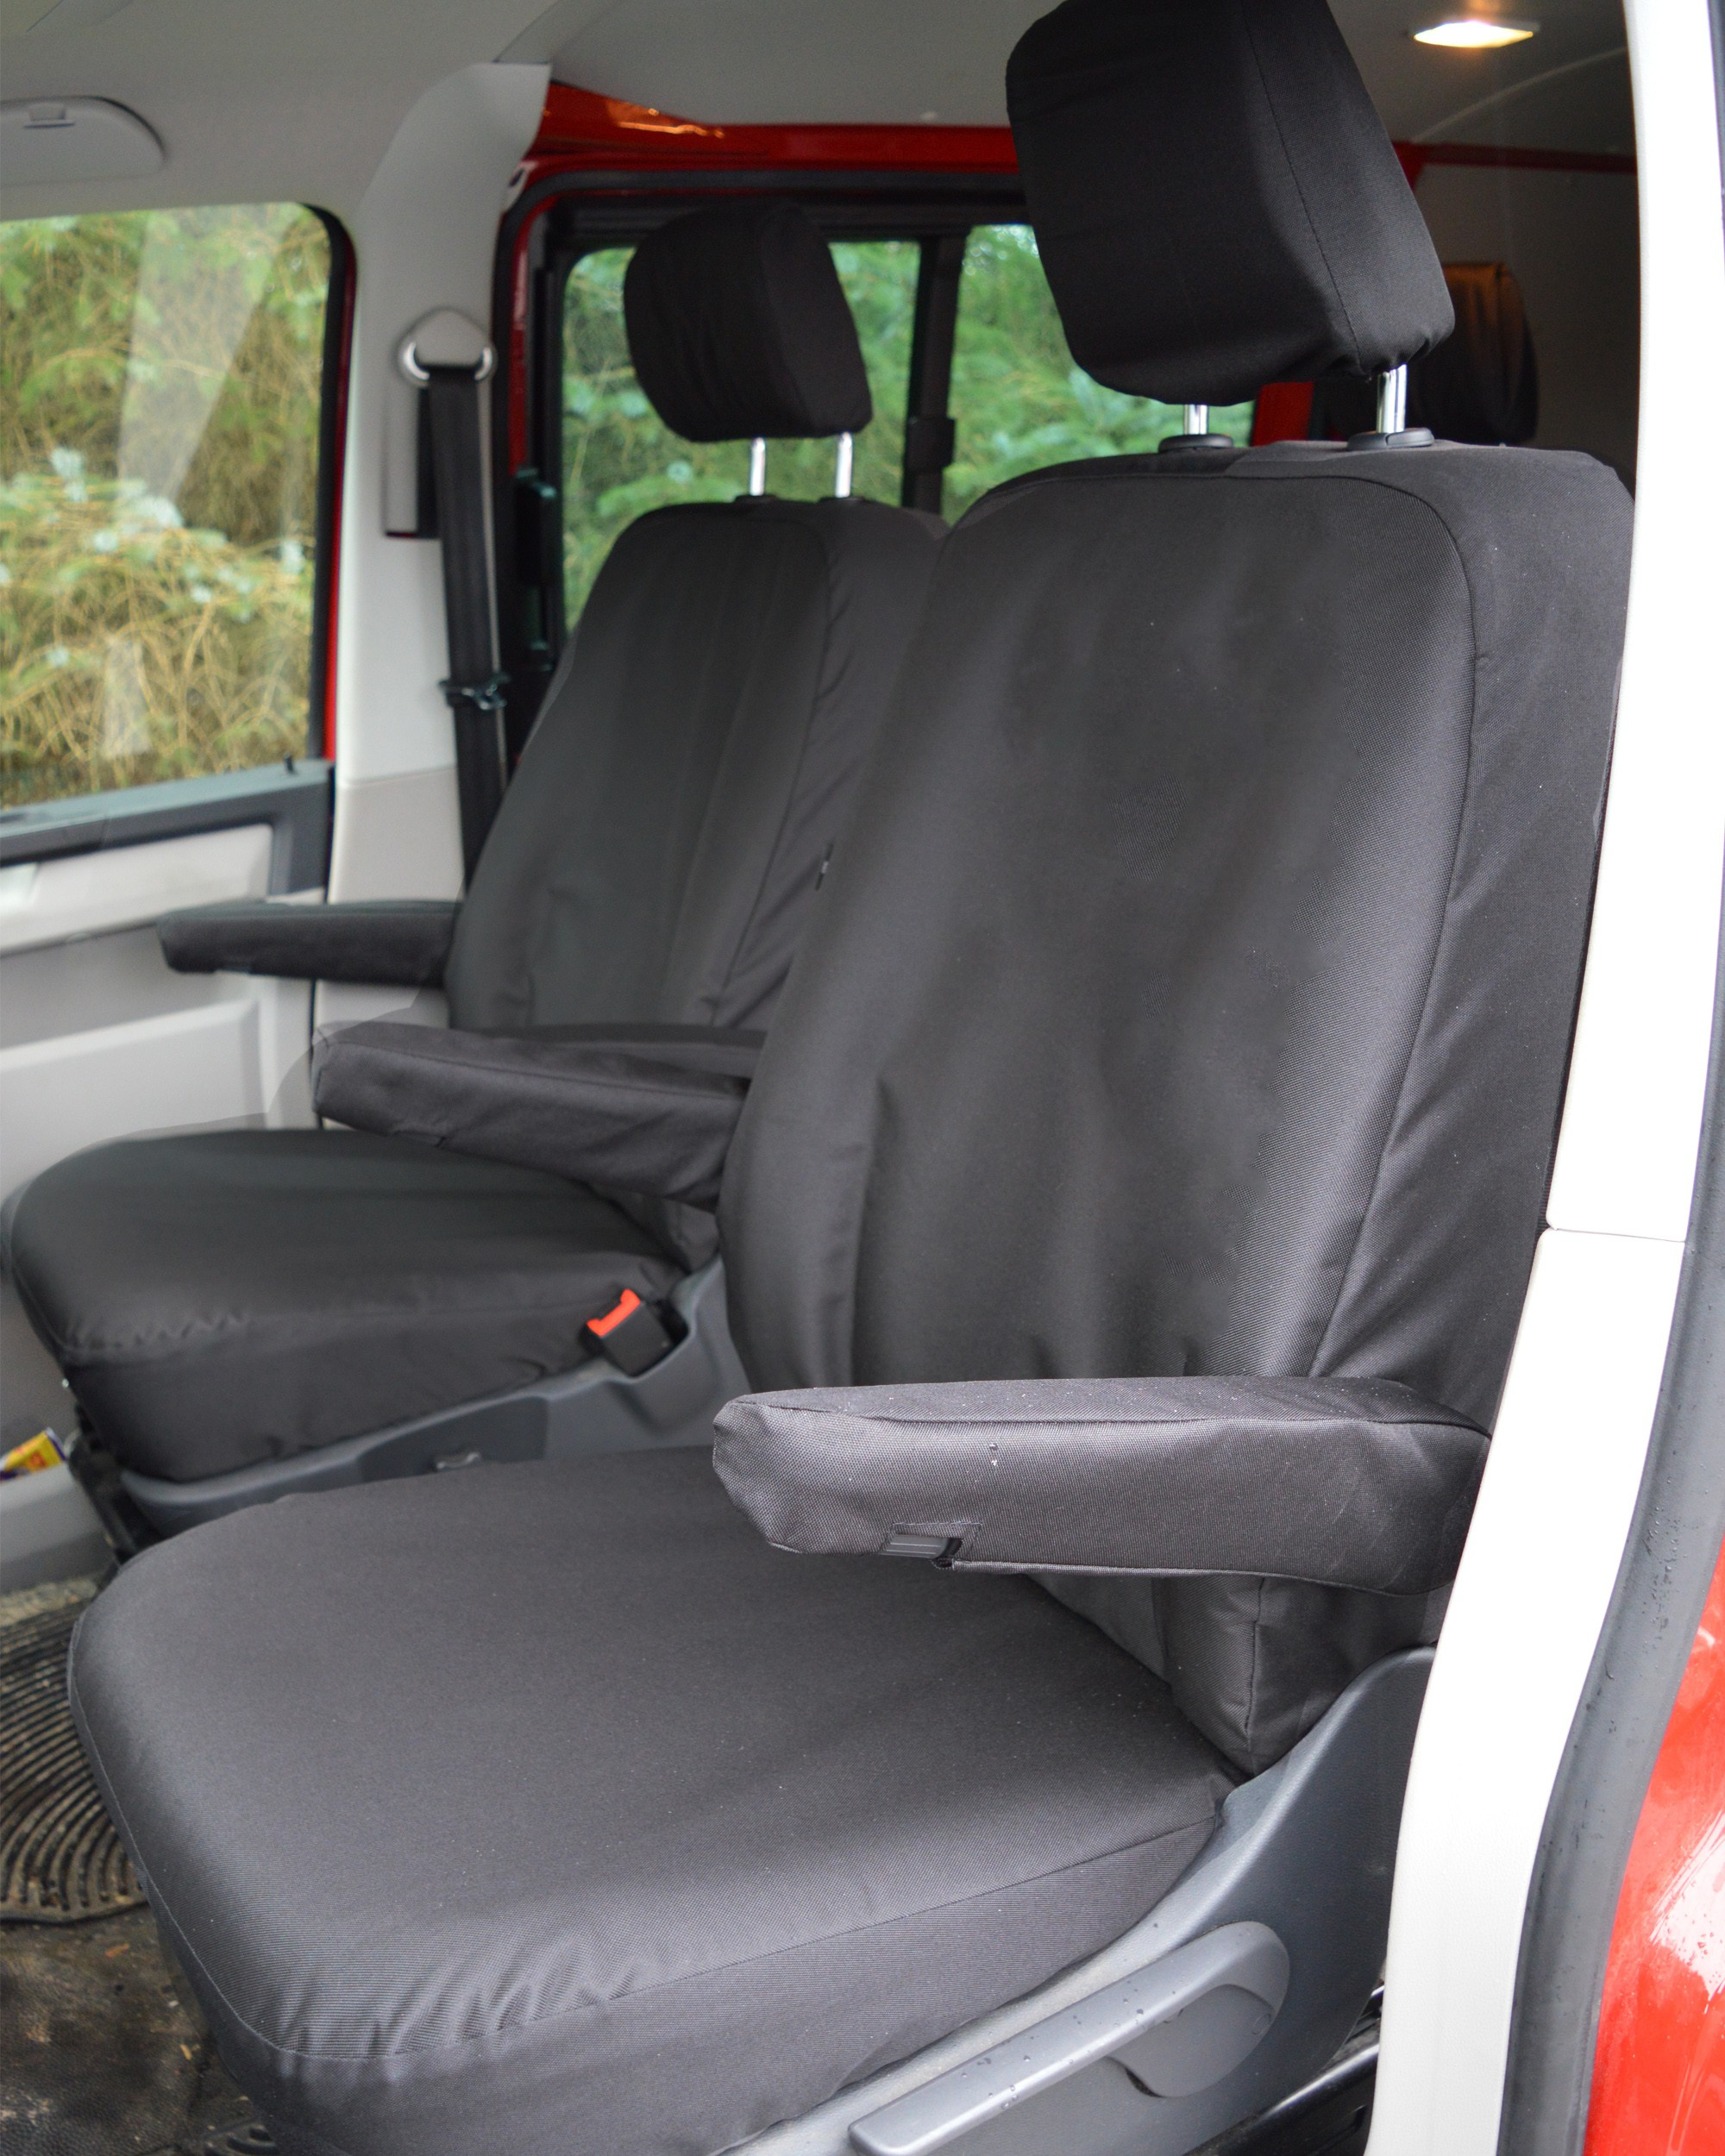 VW Transporter T5 Kombi with Captain Seats Heavy Duty Van Seat Covers